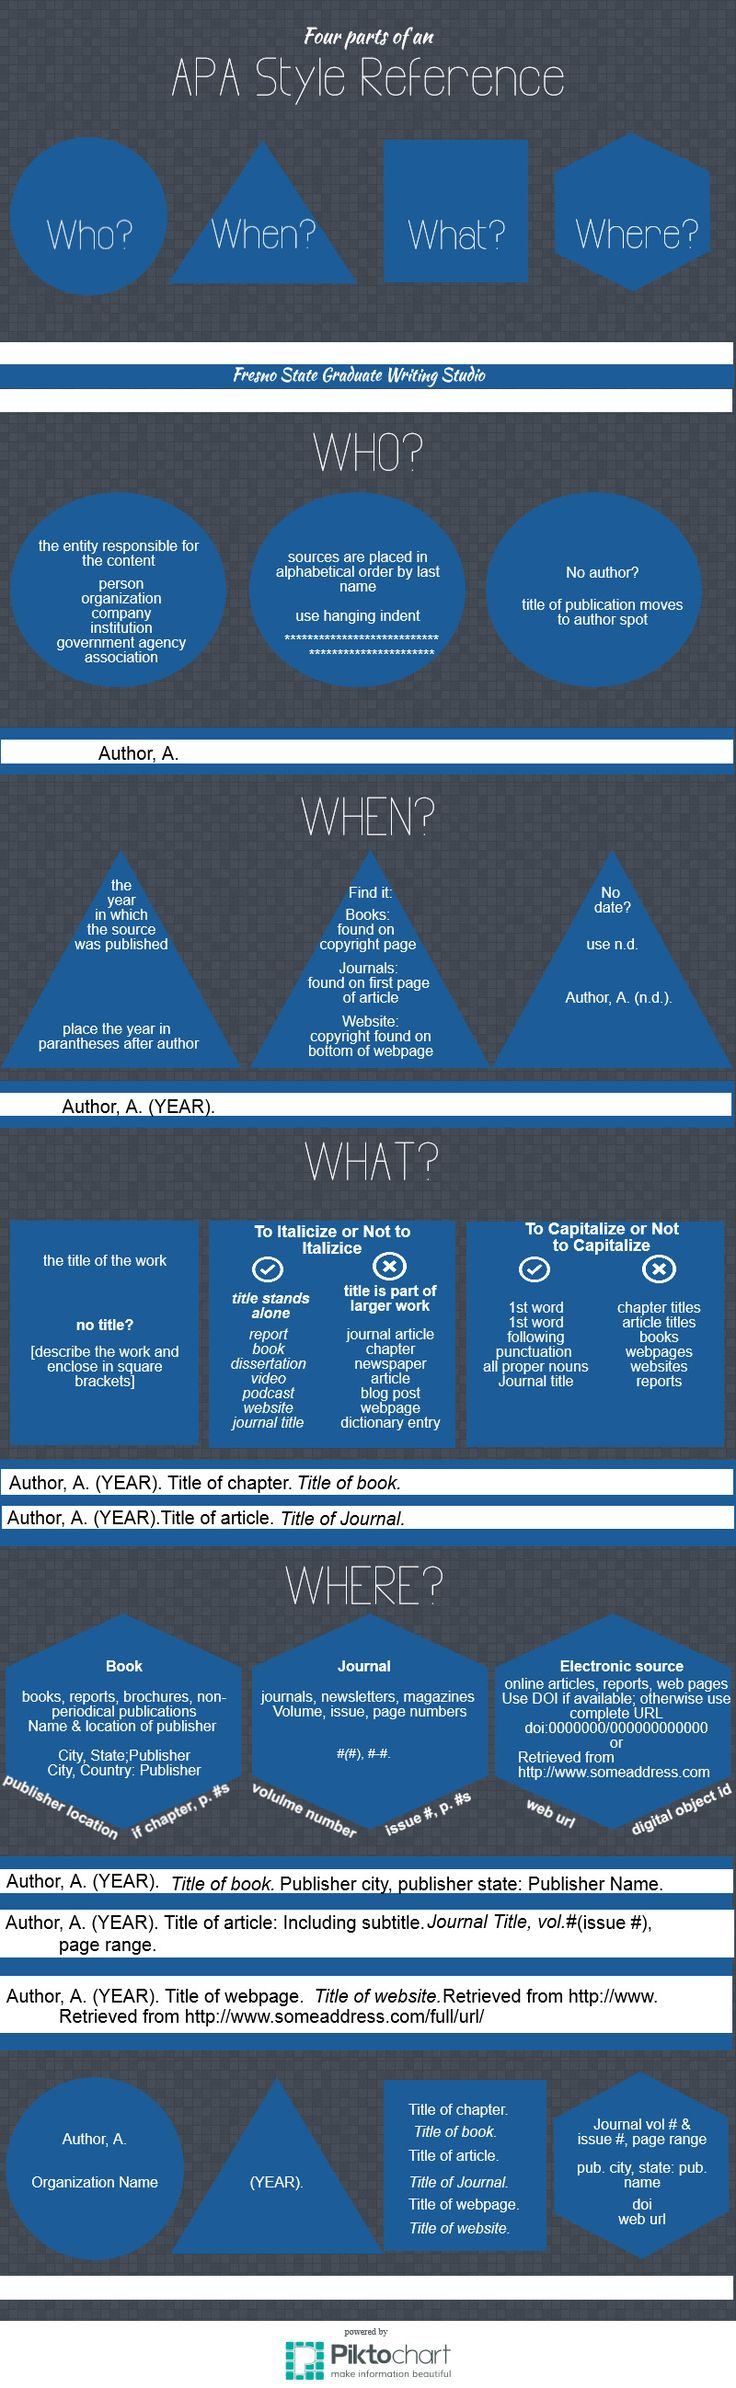 4 Parts of an APA Reference | @Piktochart Infographic